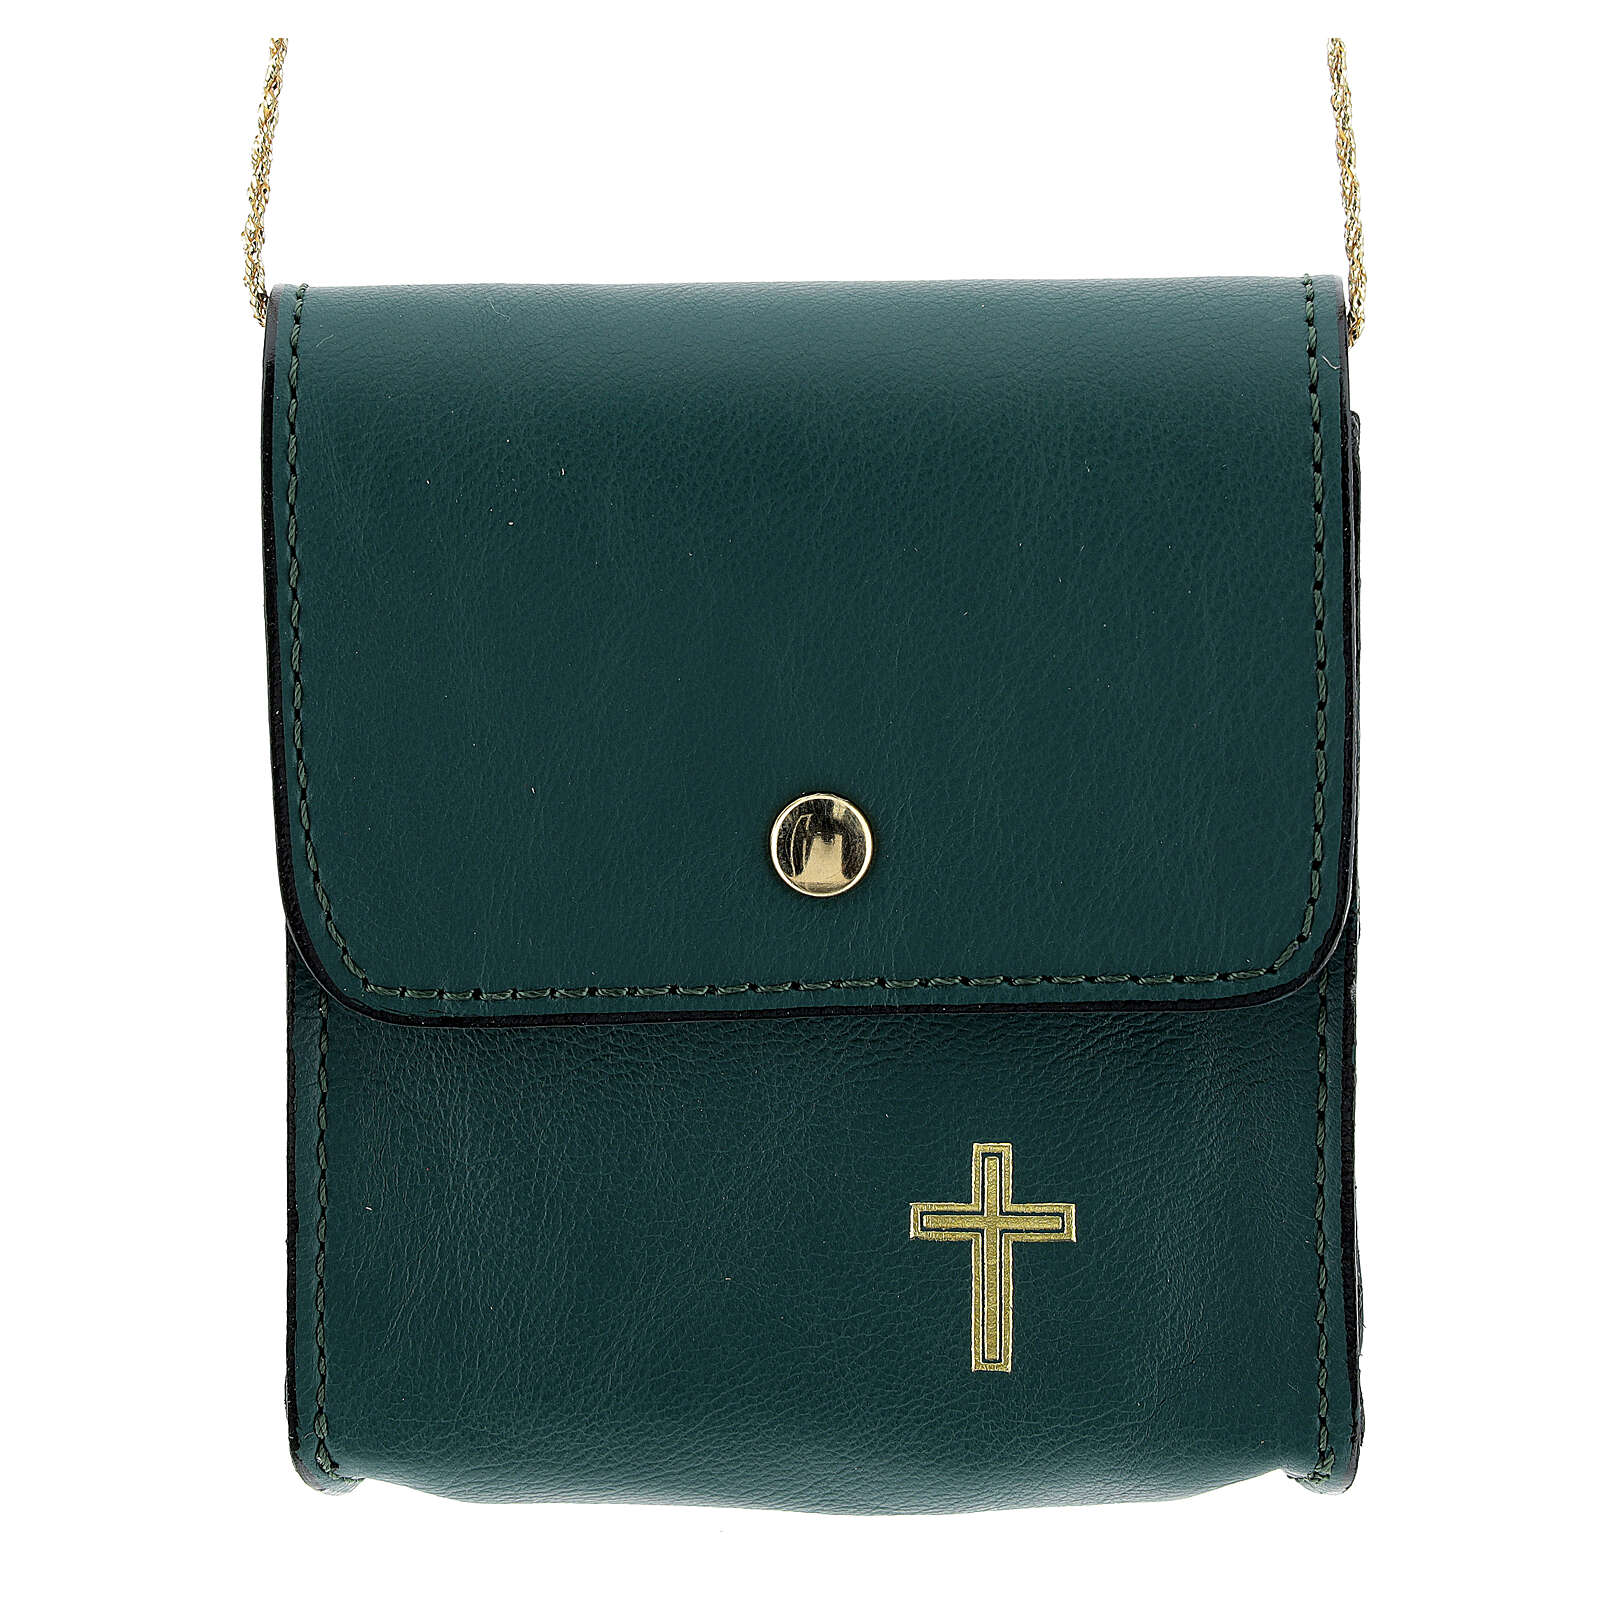 Paten burse 3 1/2x3 1/2 in of real green leather 4